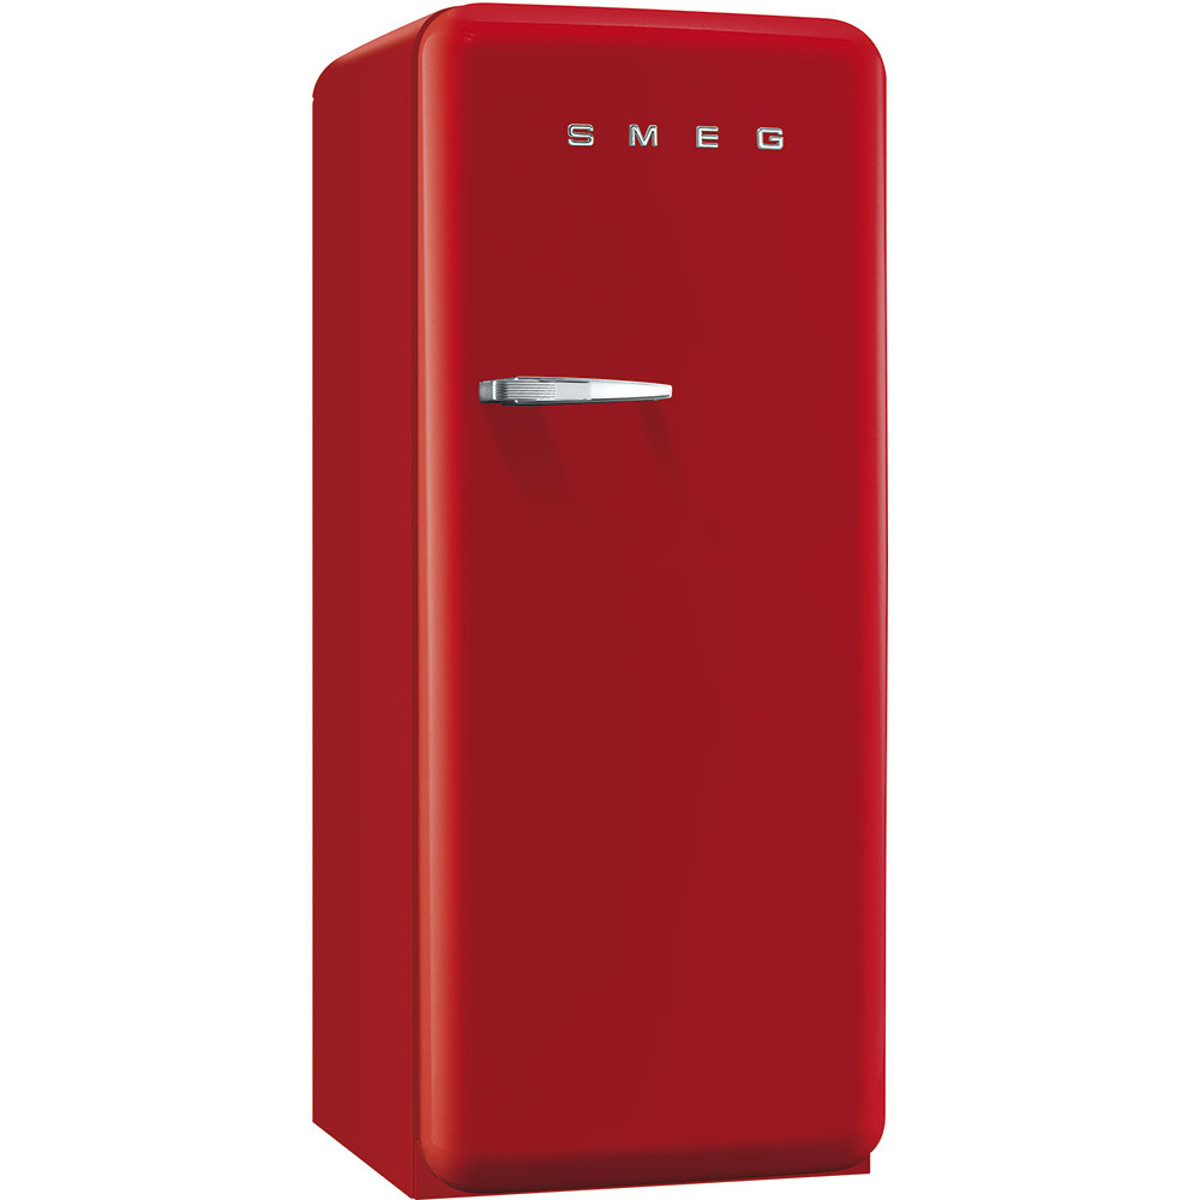 Smeg FAB28QR1 50's Style Fridge with Freezer Compartment – Red